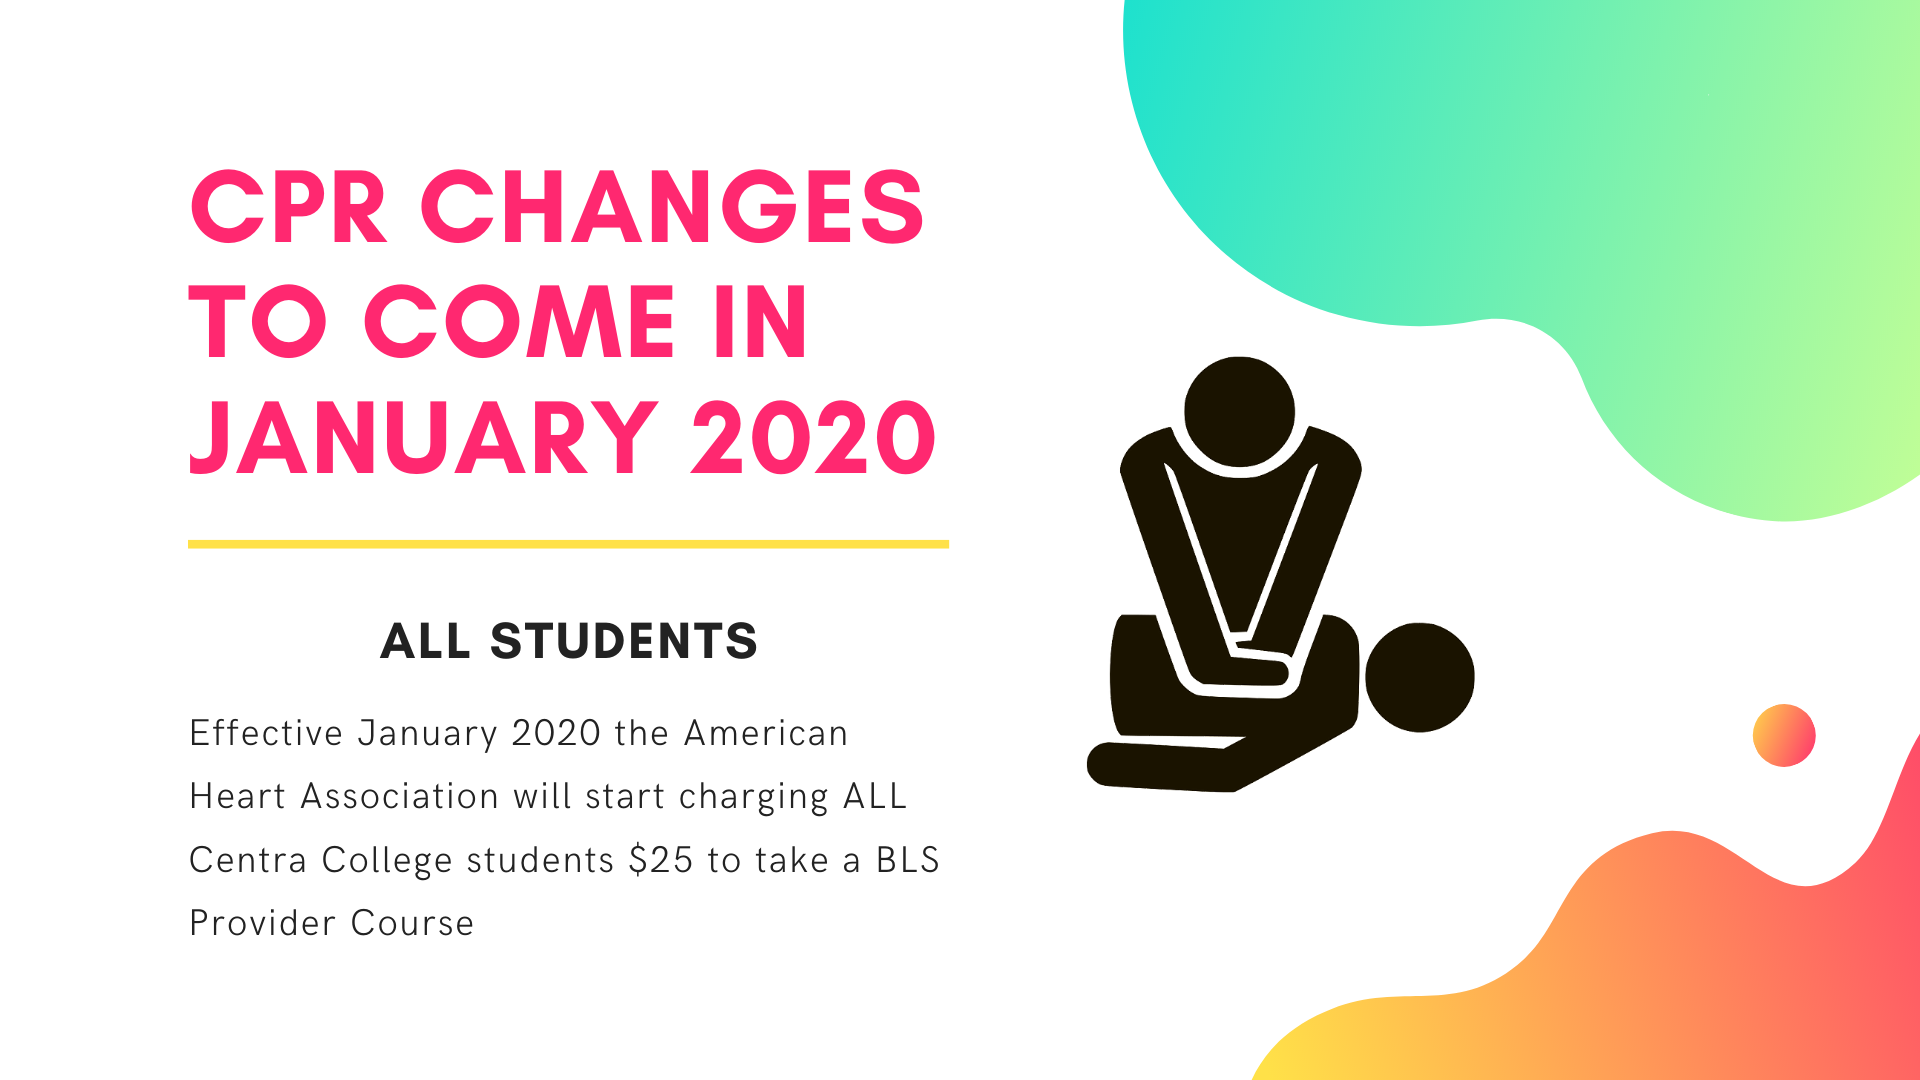 CPR changes coming January 2020